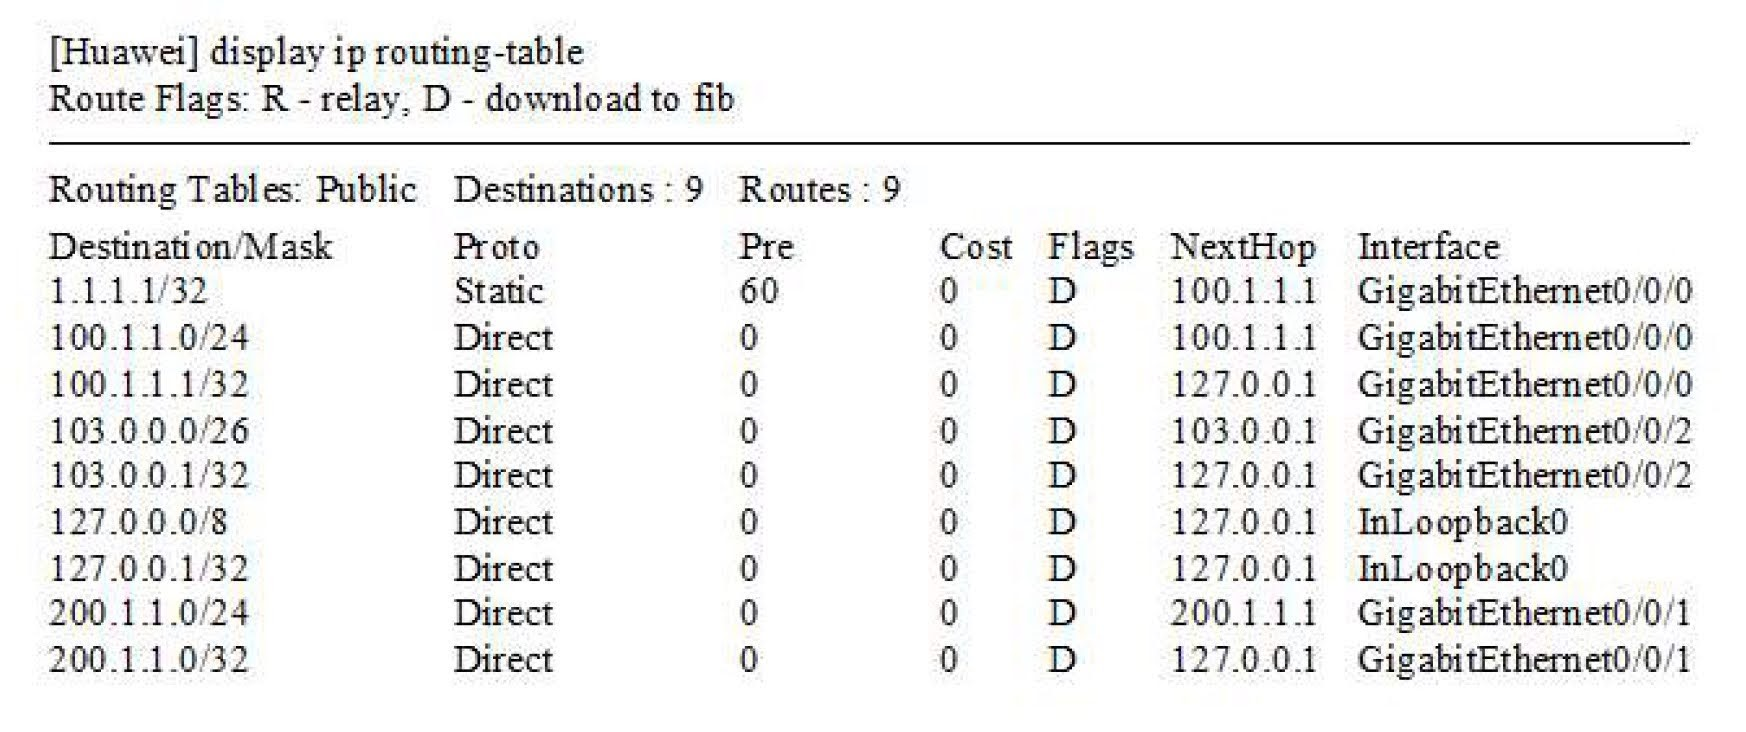 The routing table includes direct routes and static routes and the preference of the direct routes cannot be changed.